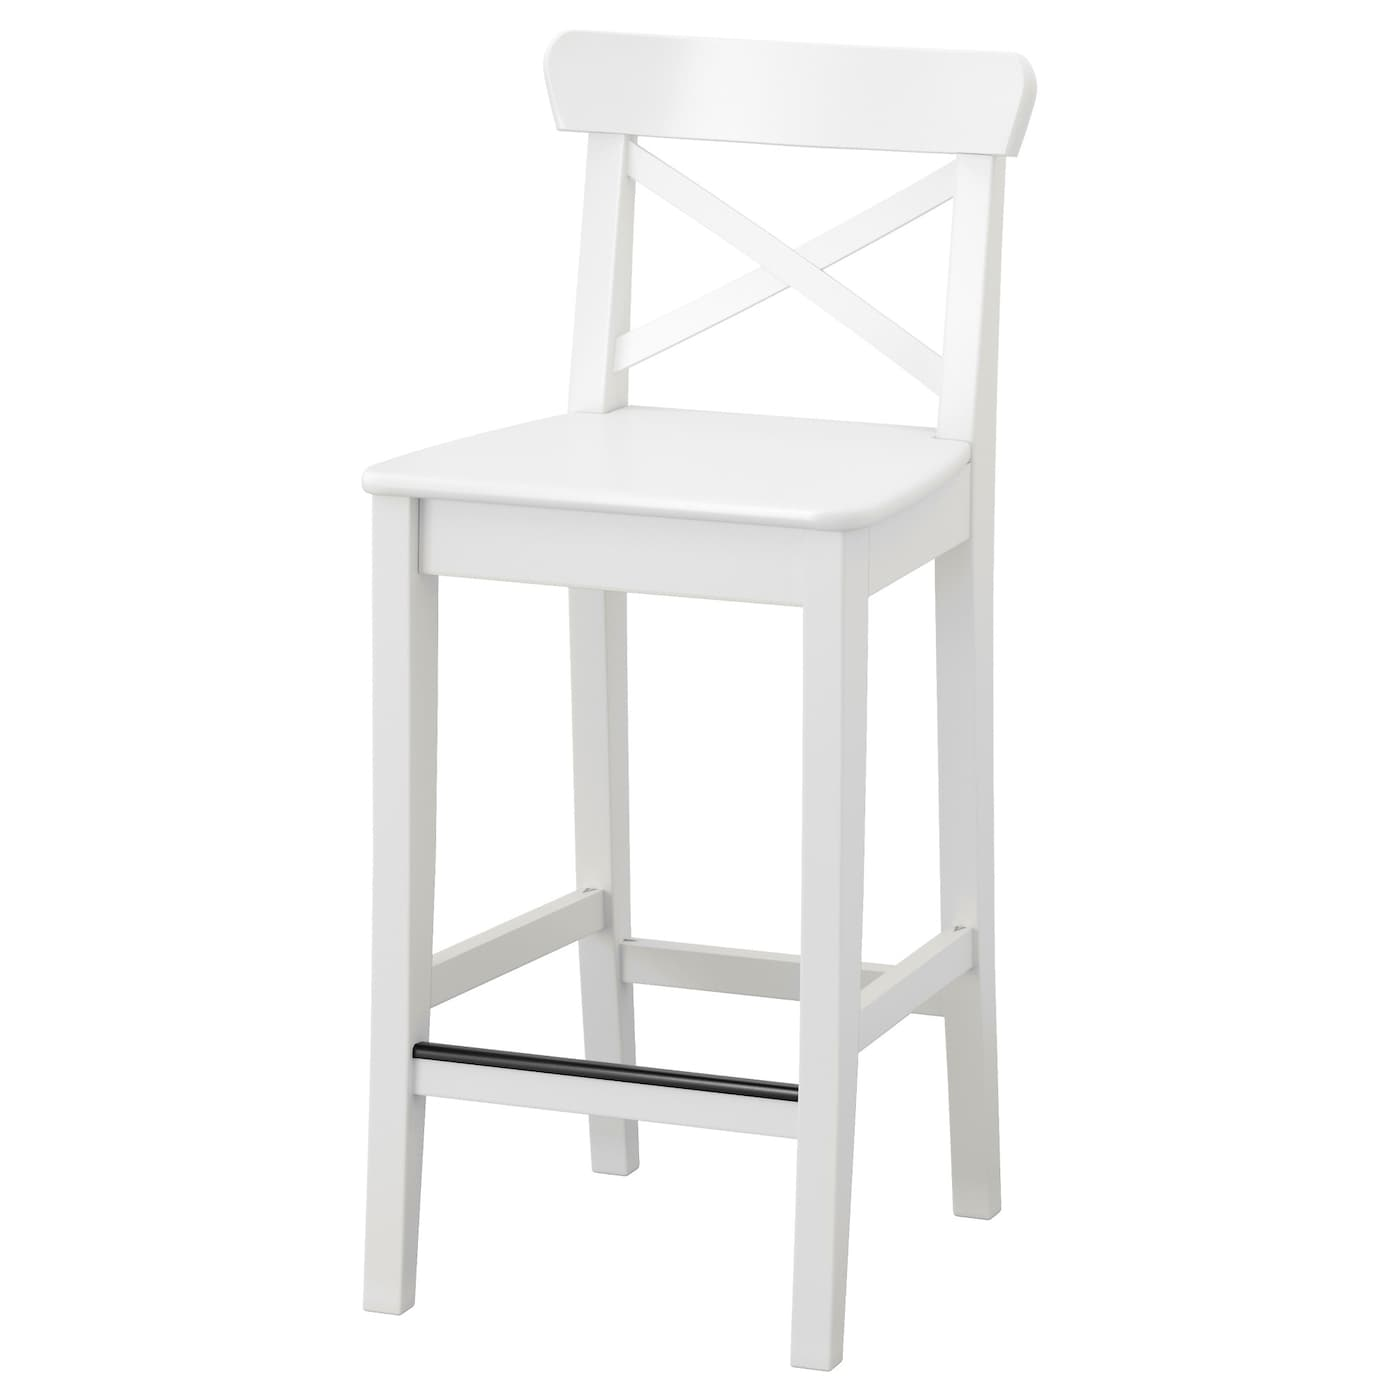 Ingolf bar stool with backrest white 63 cm ikea - Chaise de bar blanche ...